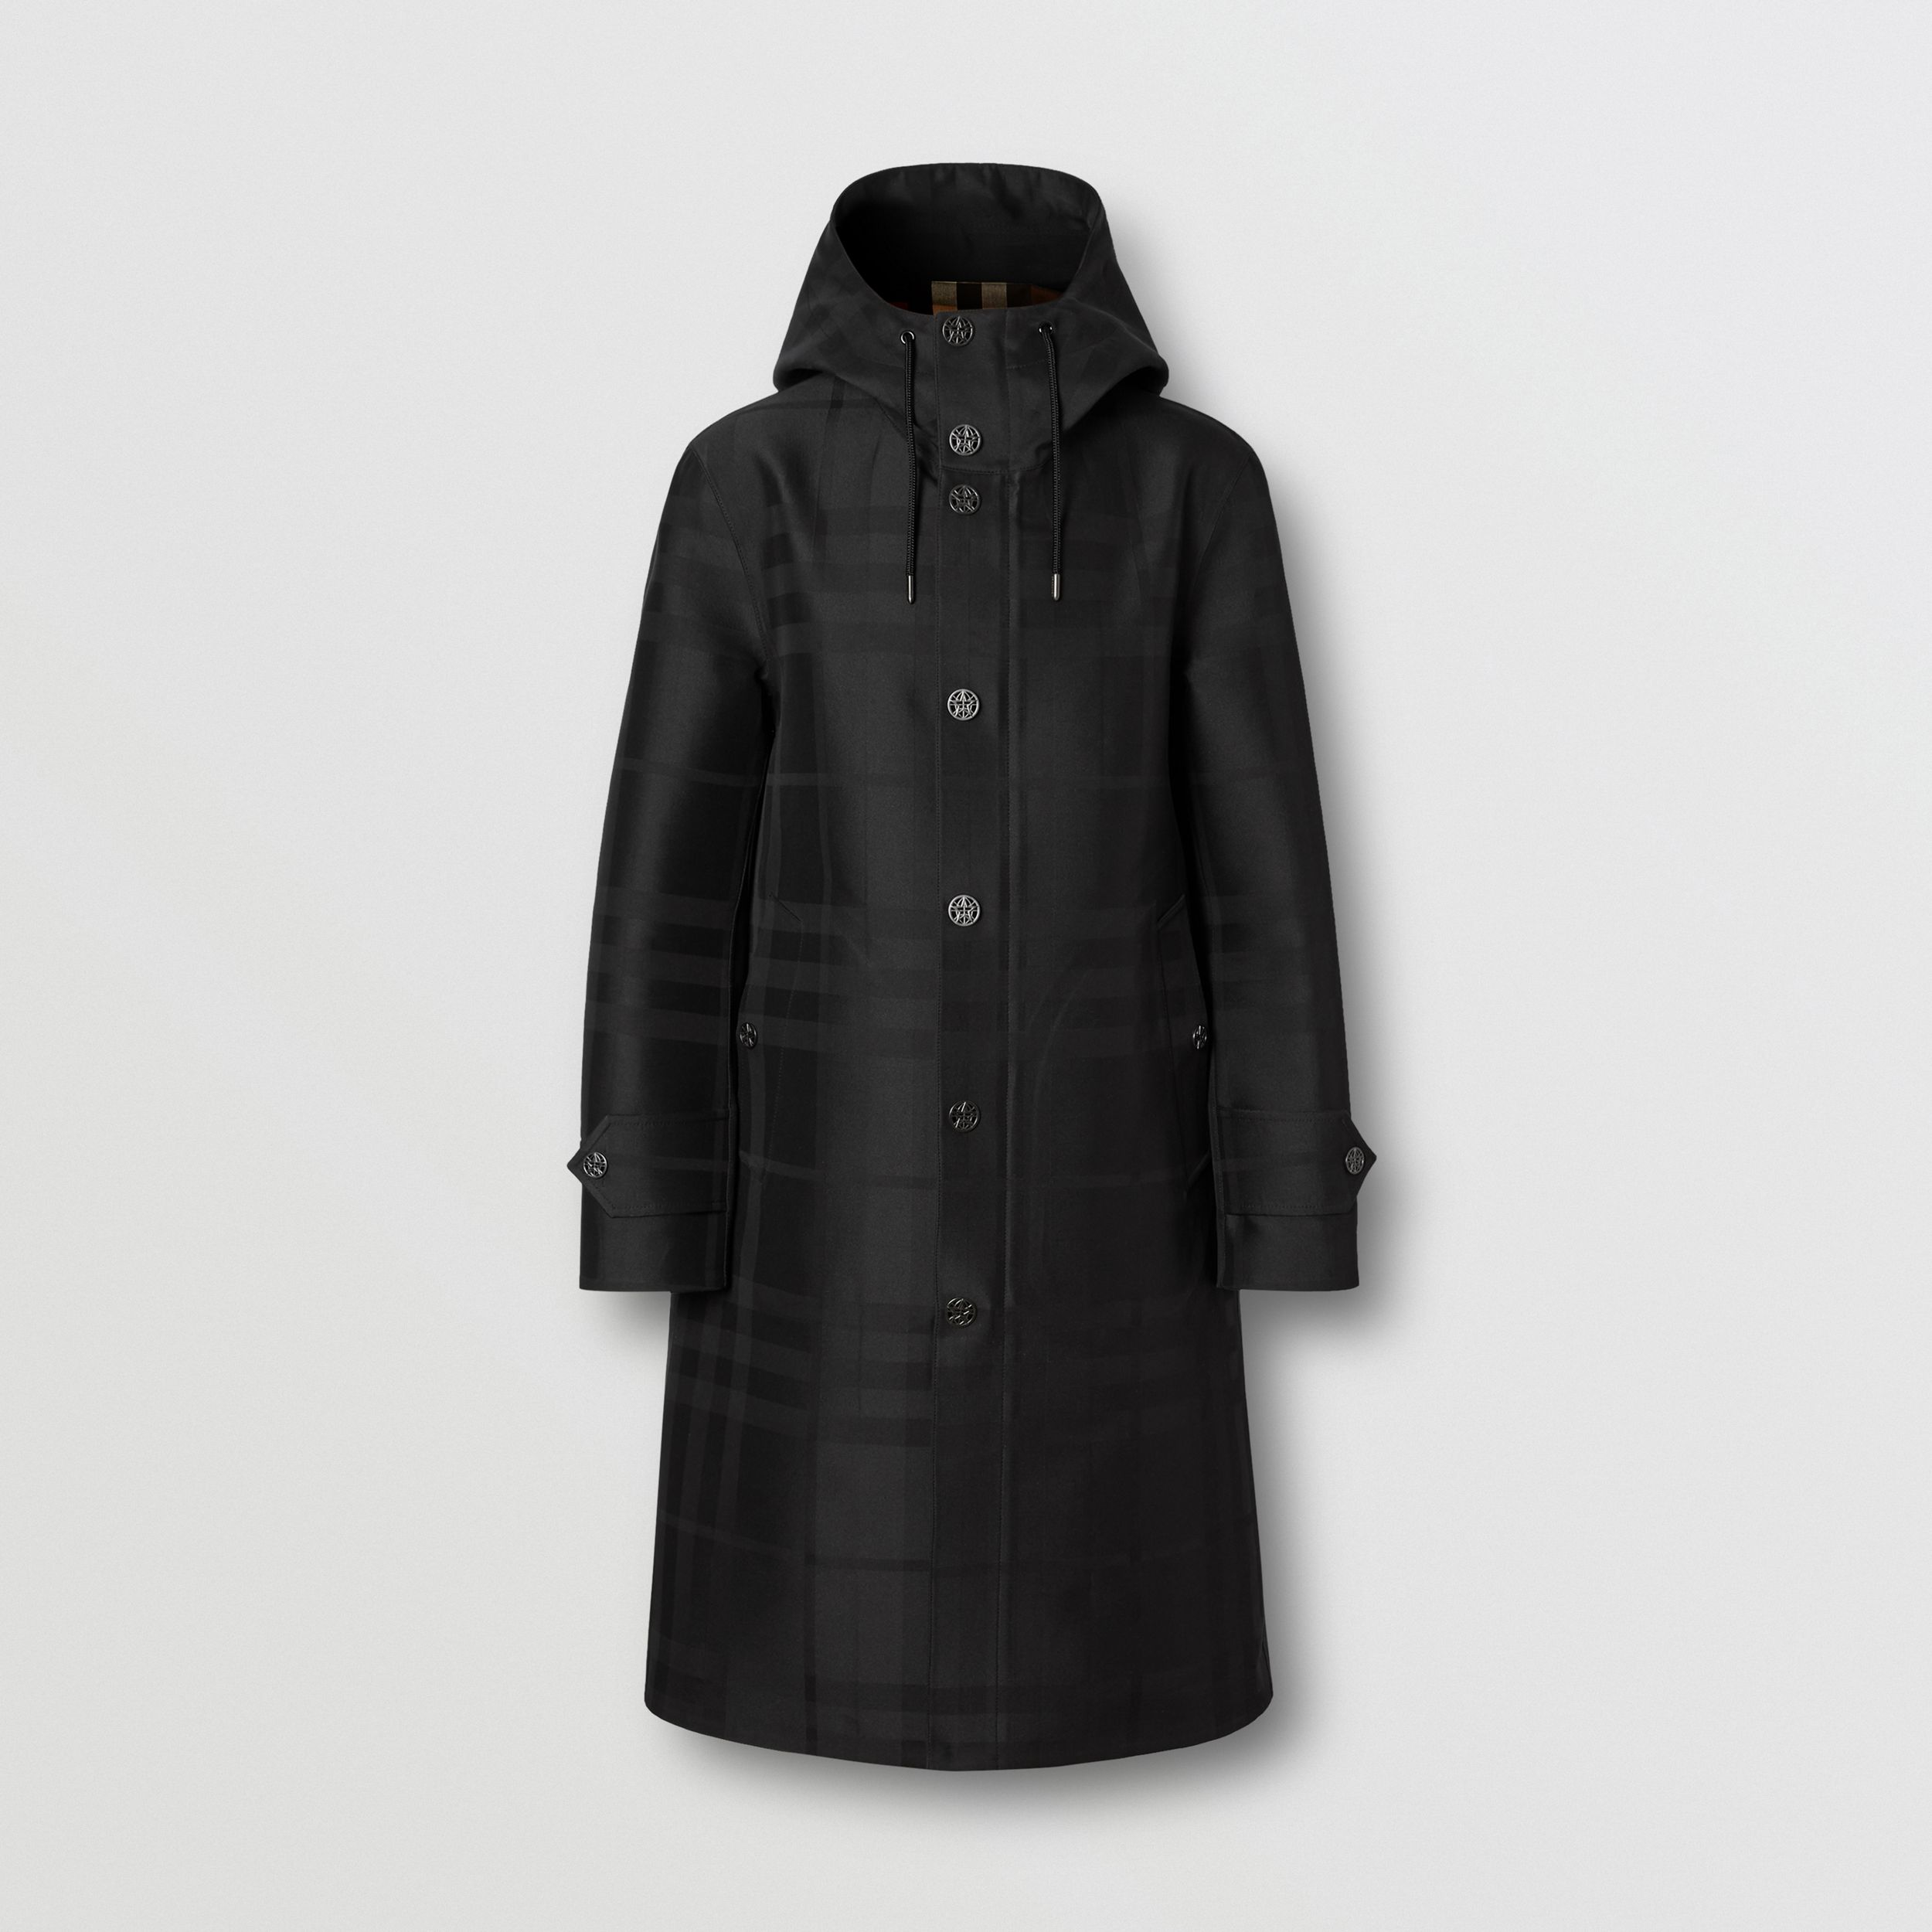 Globe Graphic Detail Check Technical Cotton Coat in Black - Men | Burberry - 4